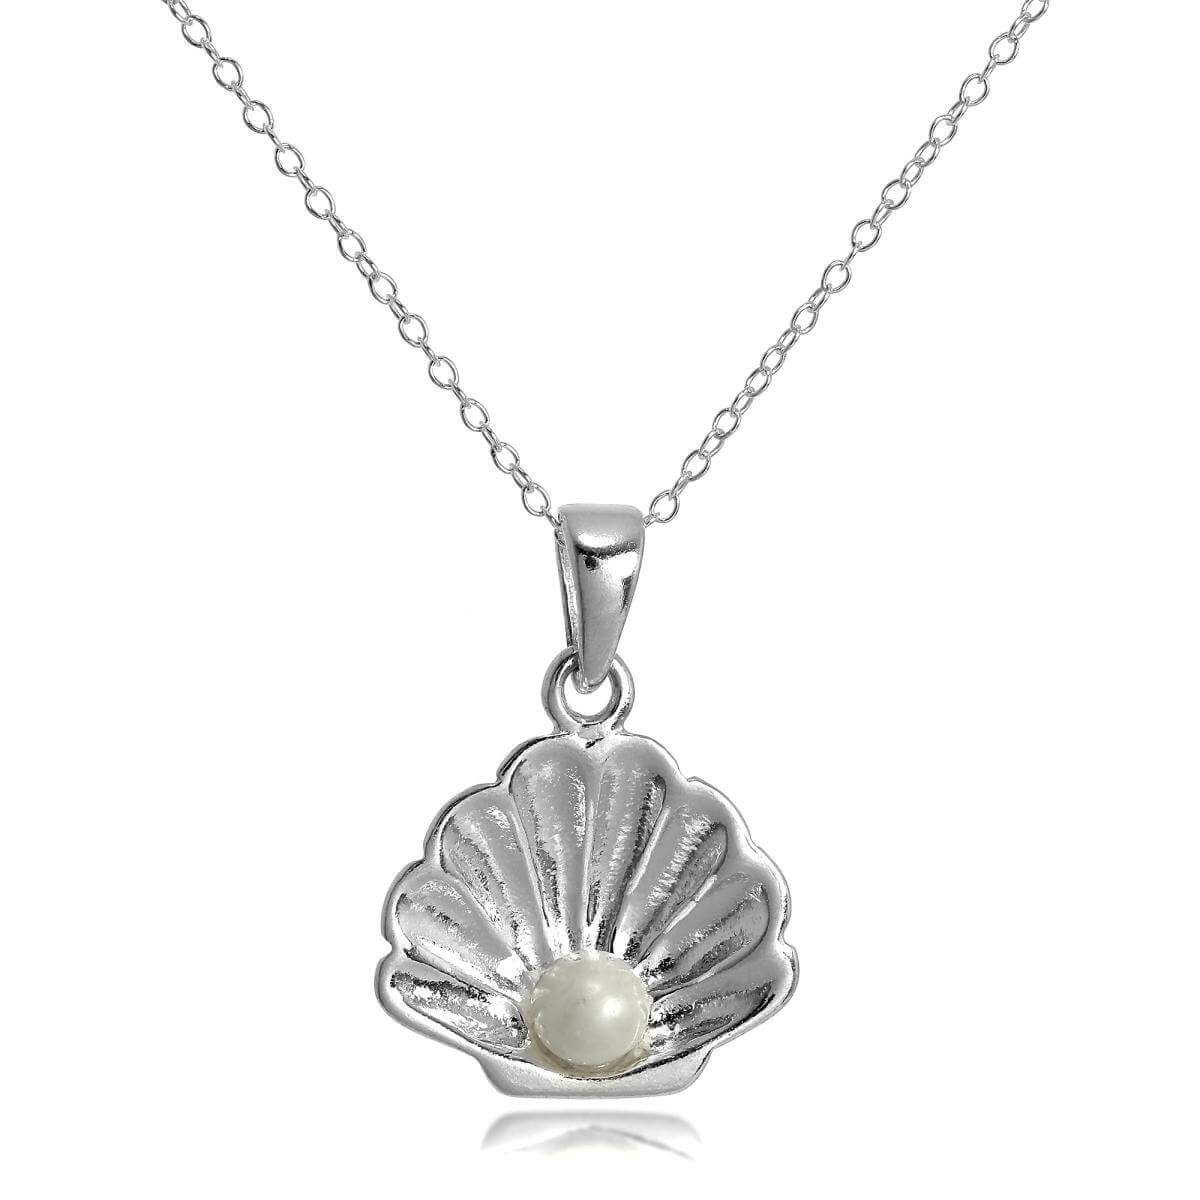 Sterling Silver Sea Shell Necklace with Pearl on 18 Inch Chain